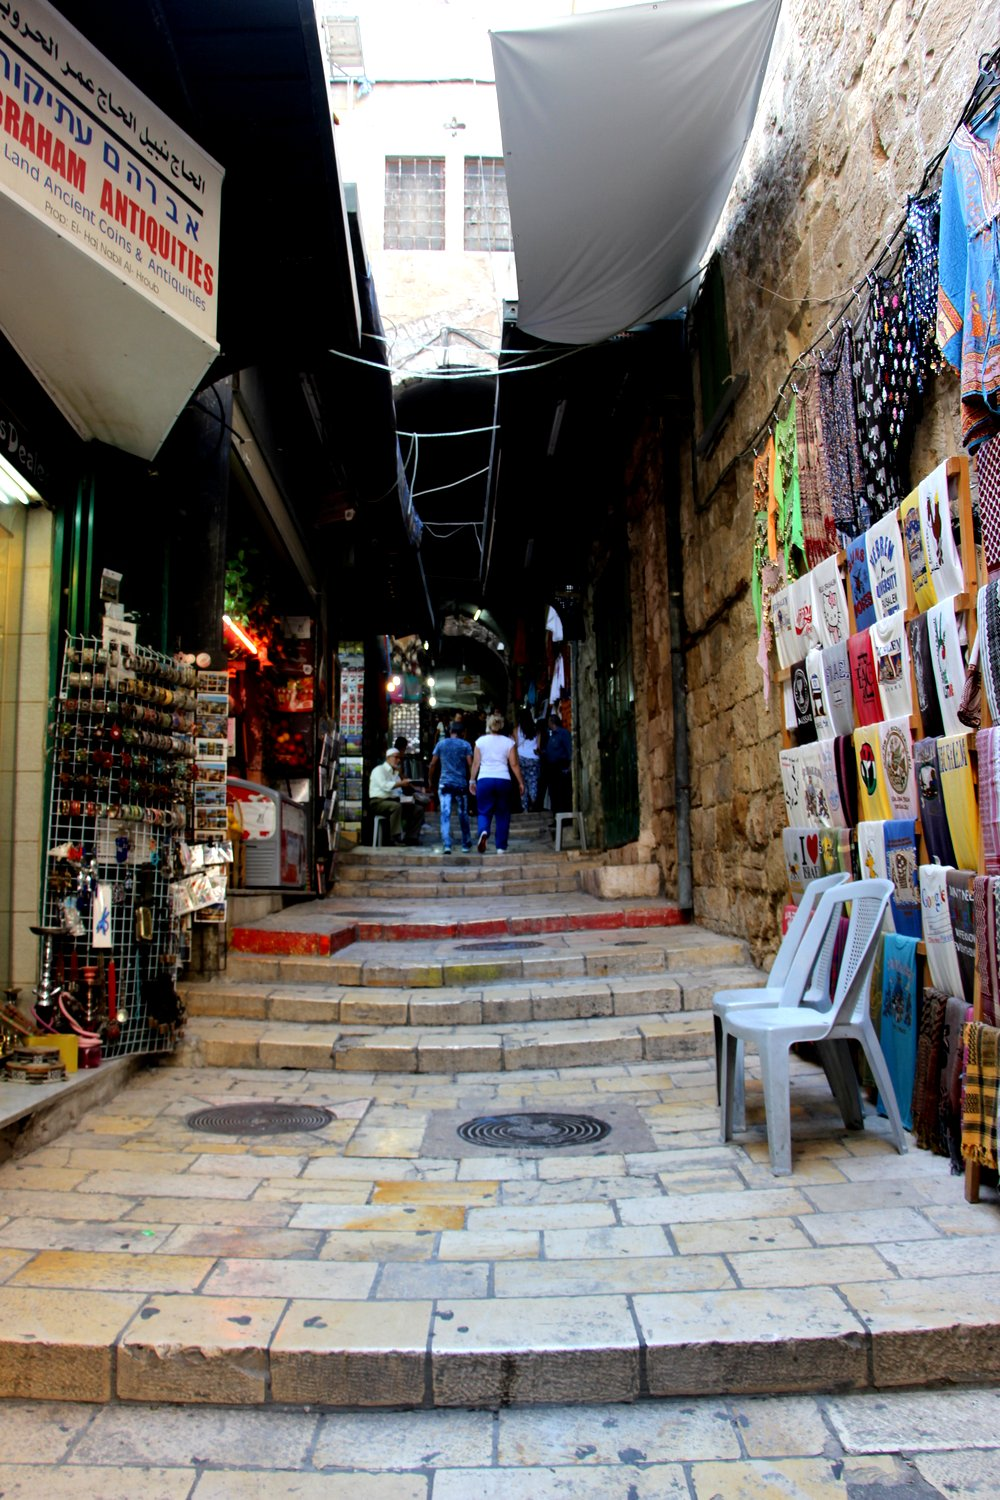 The Way winds through the normal streets of the Old City, just as Jesus would have as he carried the cross.